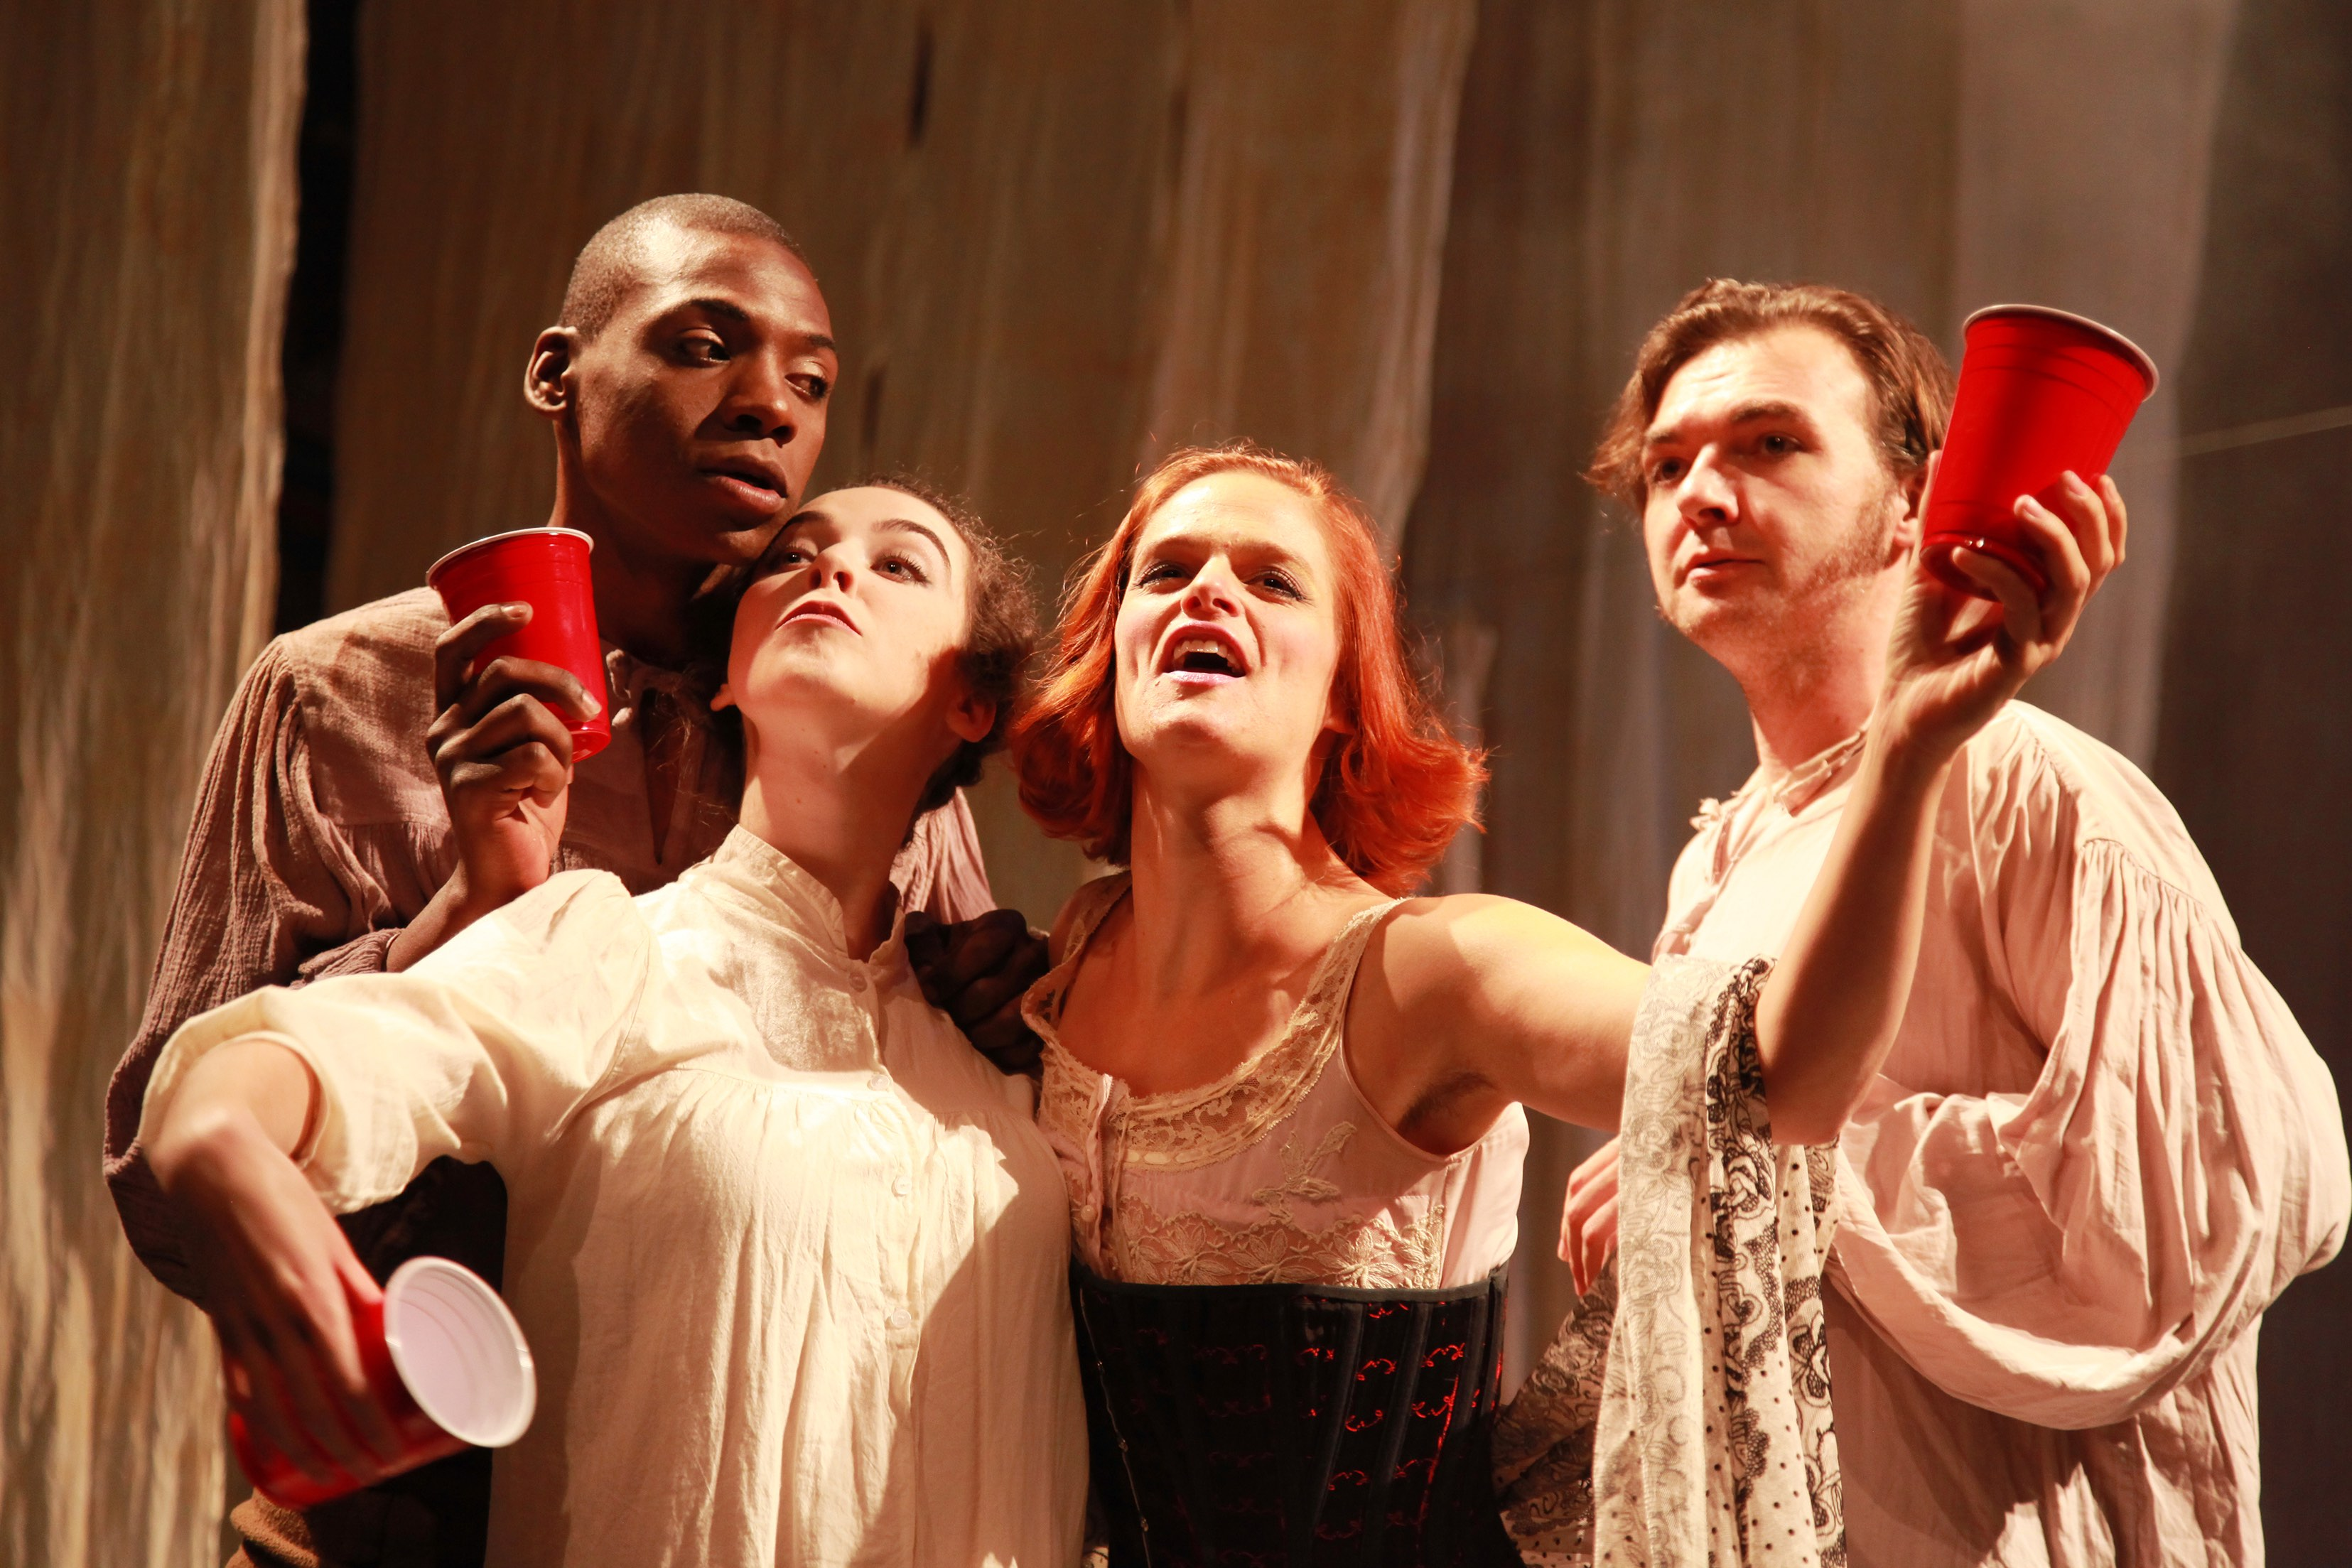 group of performers holding red cups